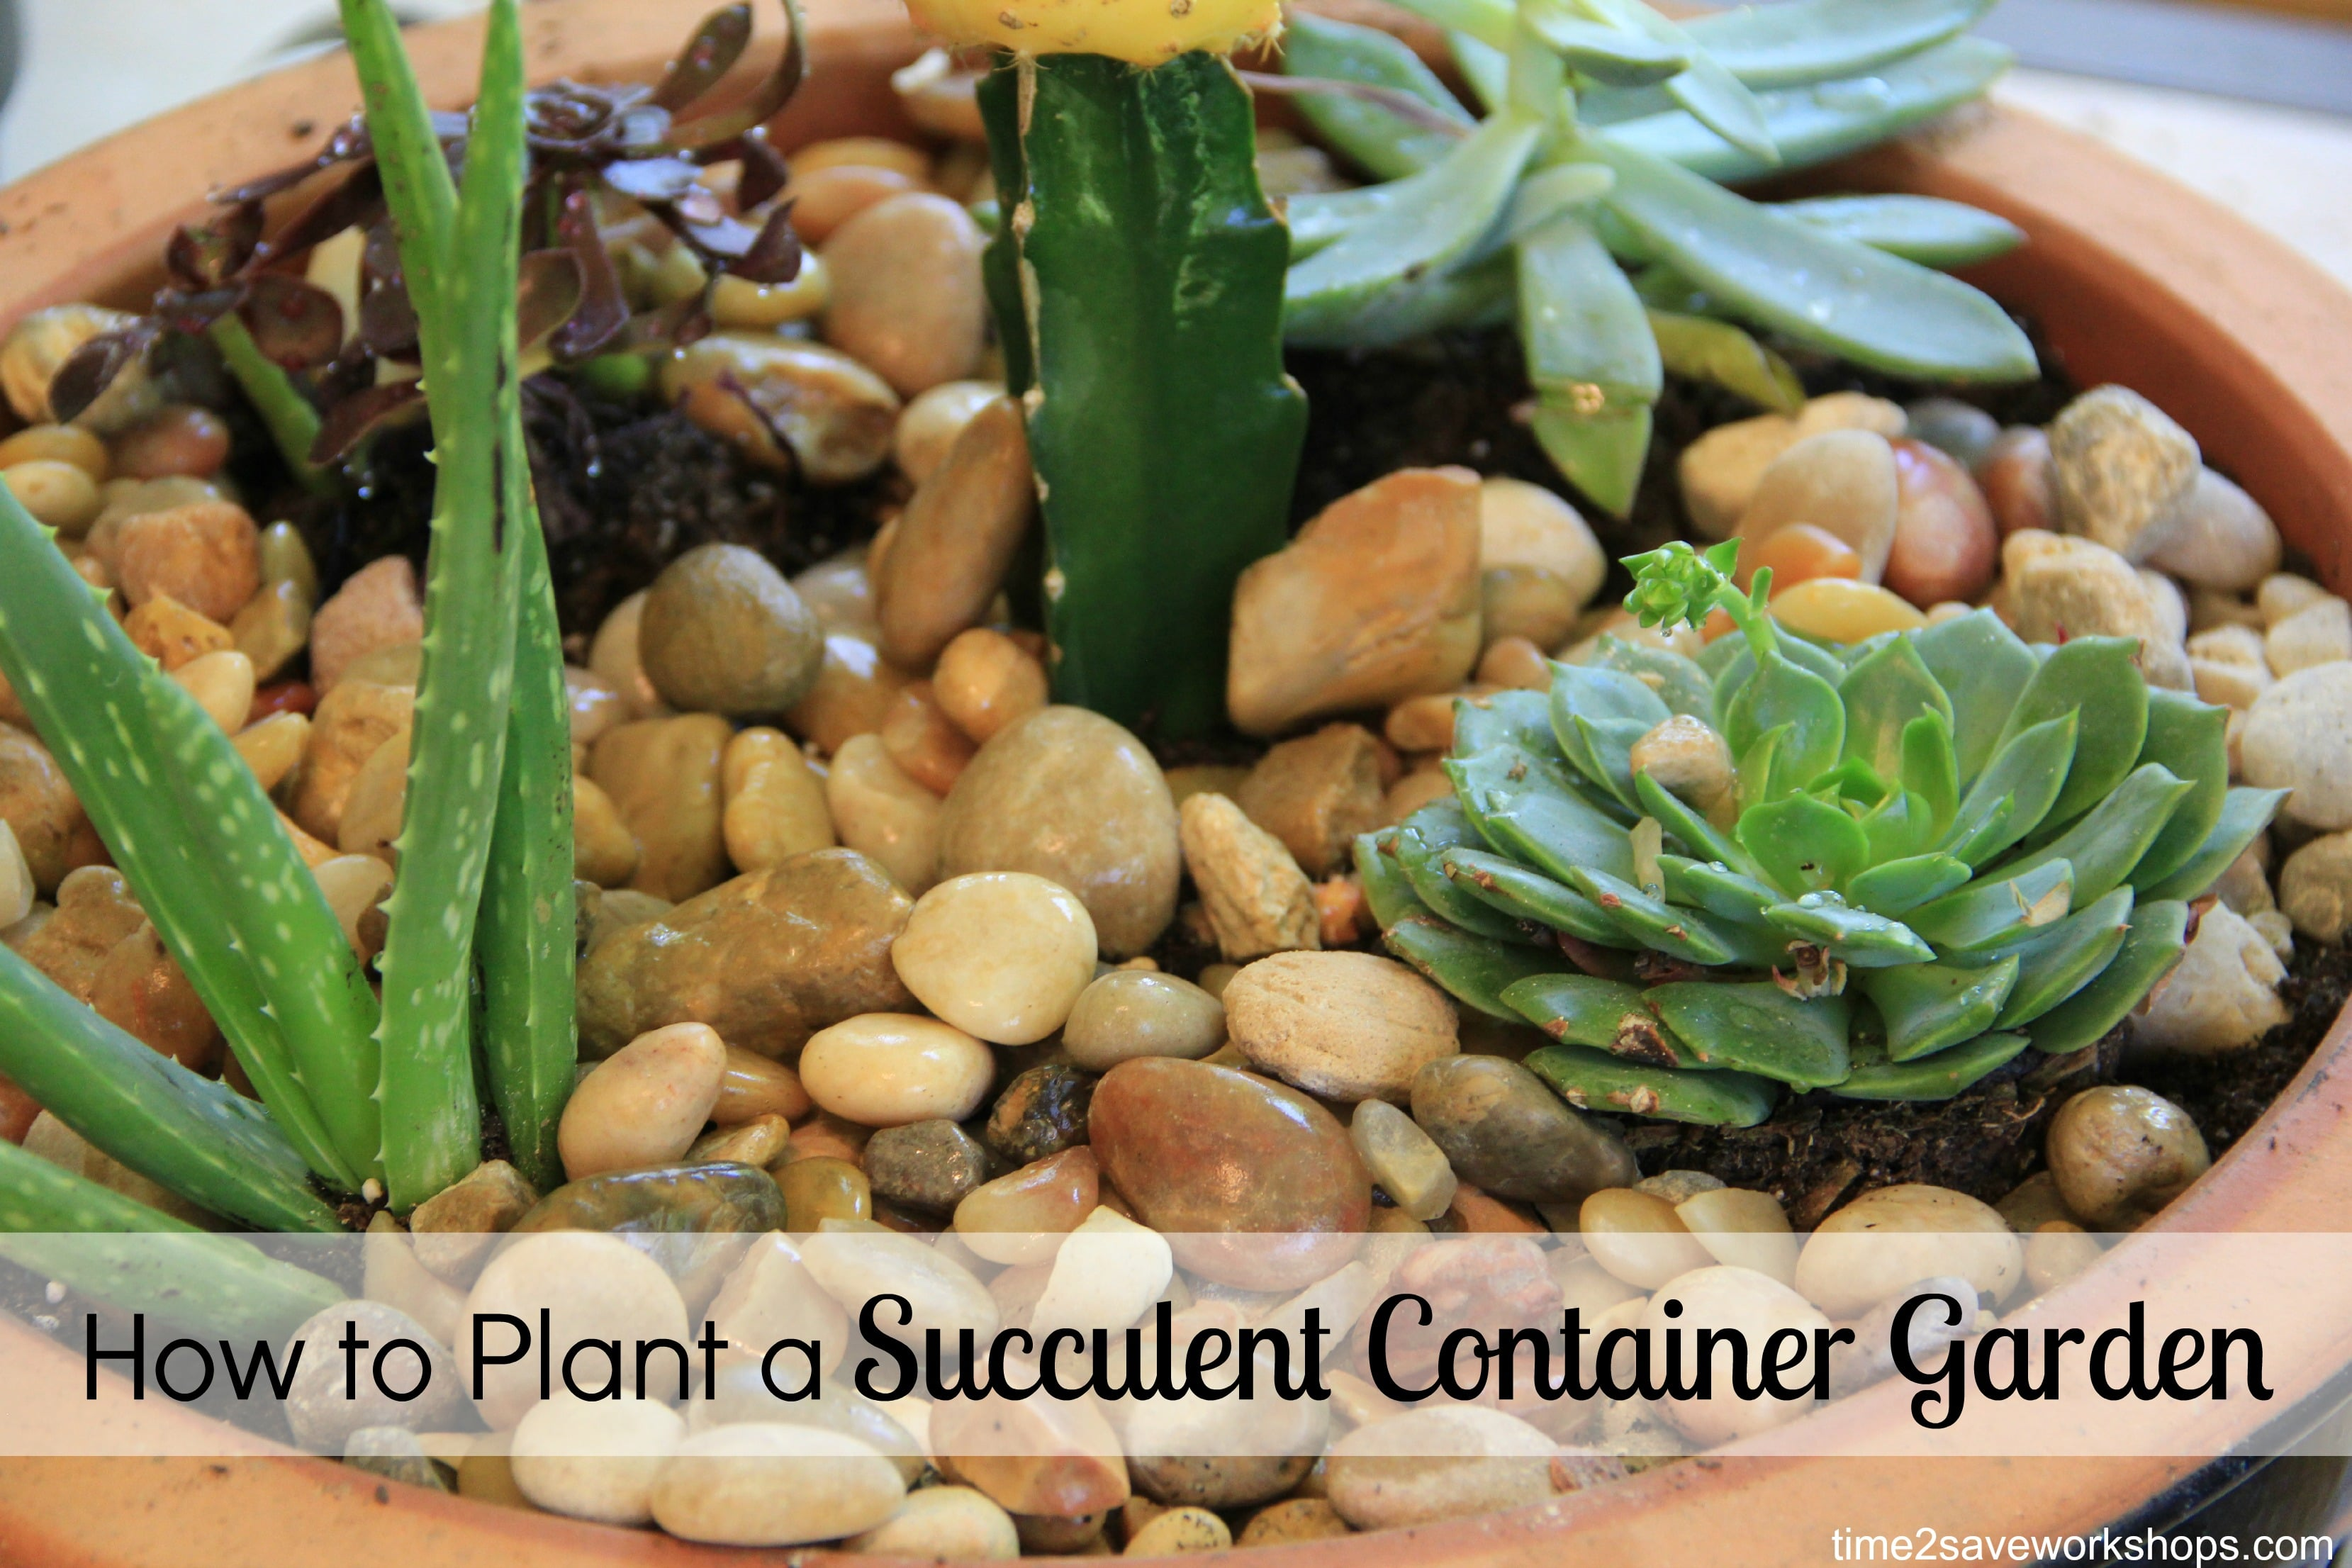 DIY How to Plant a Succulent Garden Video Tutorial Kasey Trenum